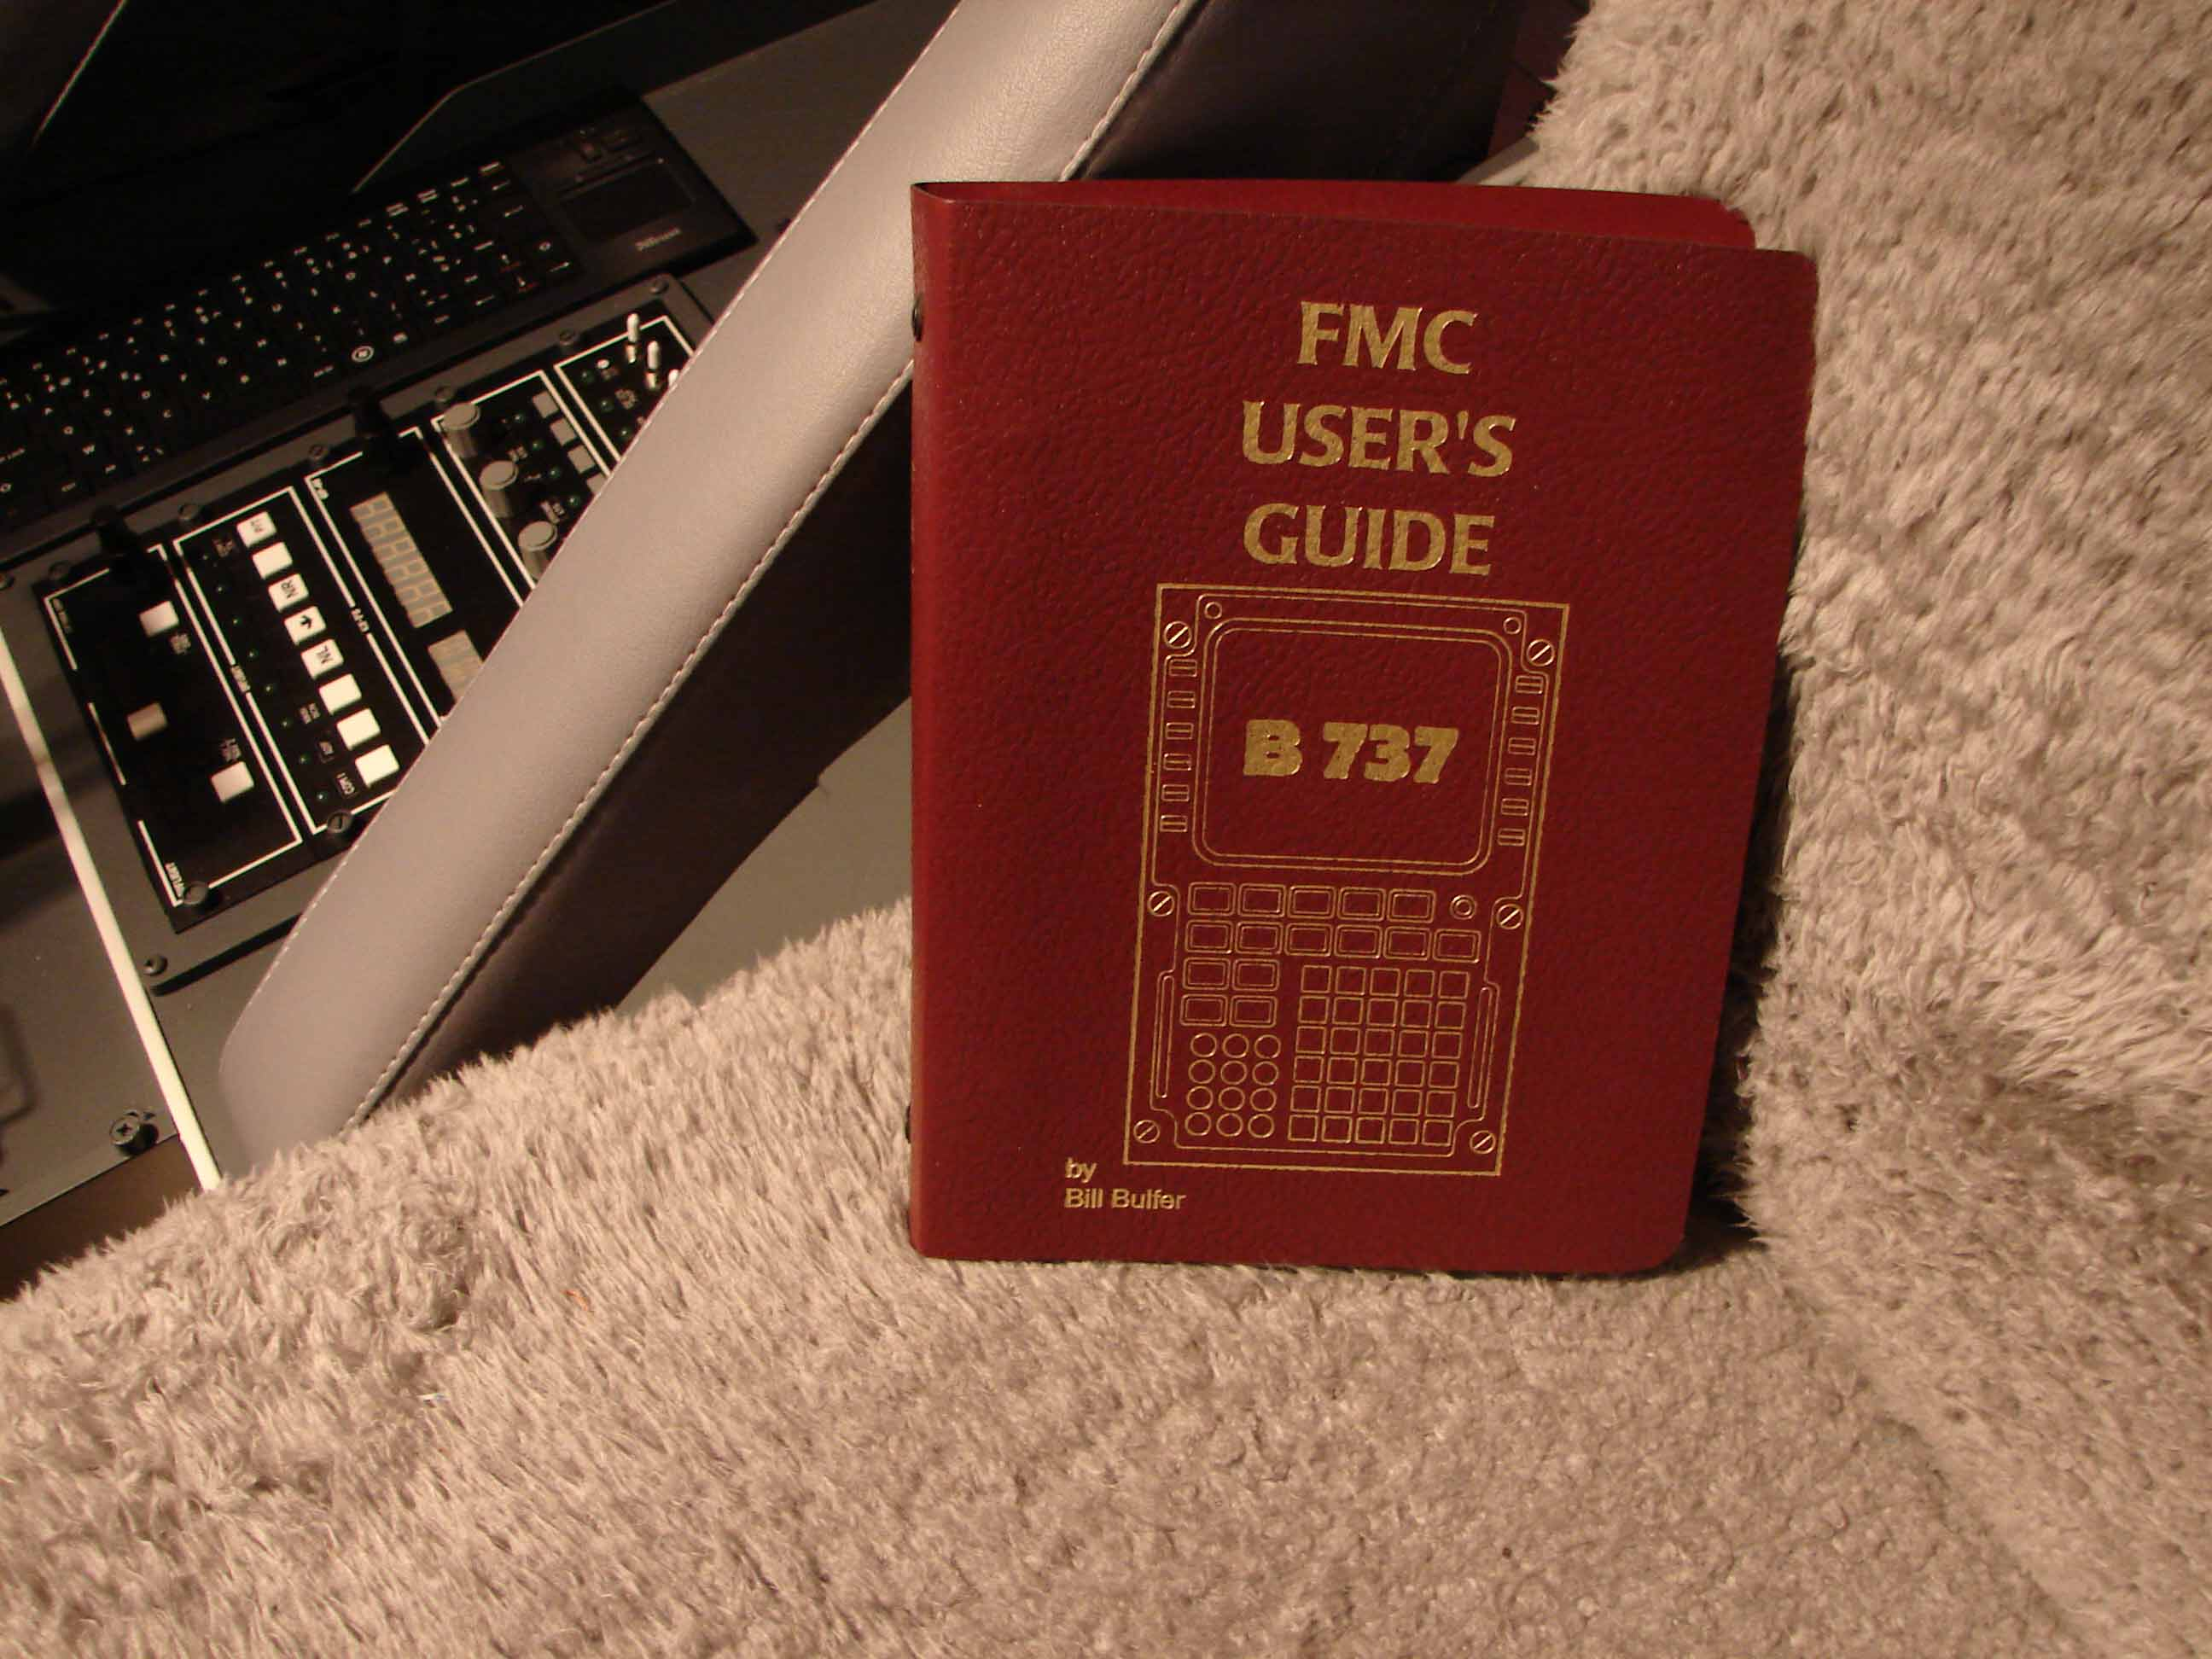 fmc user s guide b737 rh flightdeck737 be b737ng fmc user's guide pdf B737NG Passengers